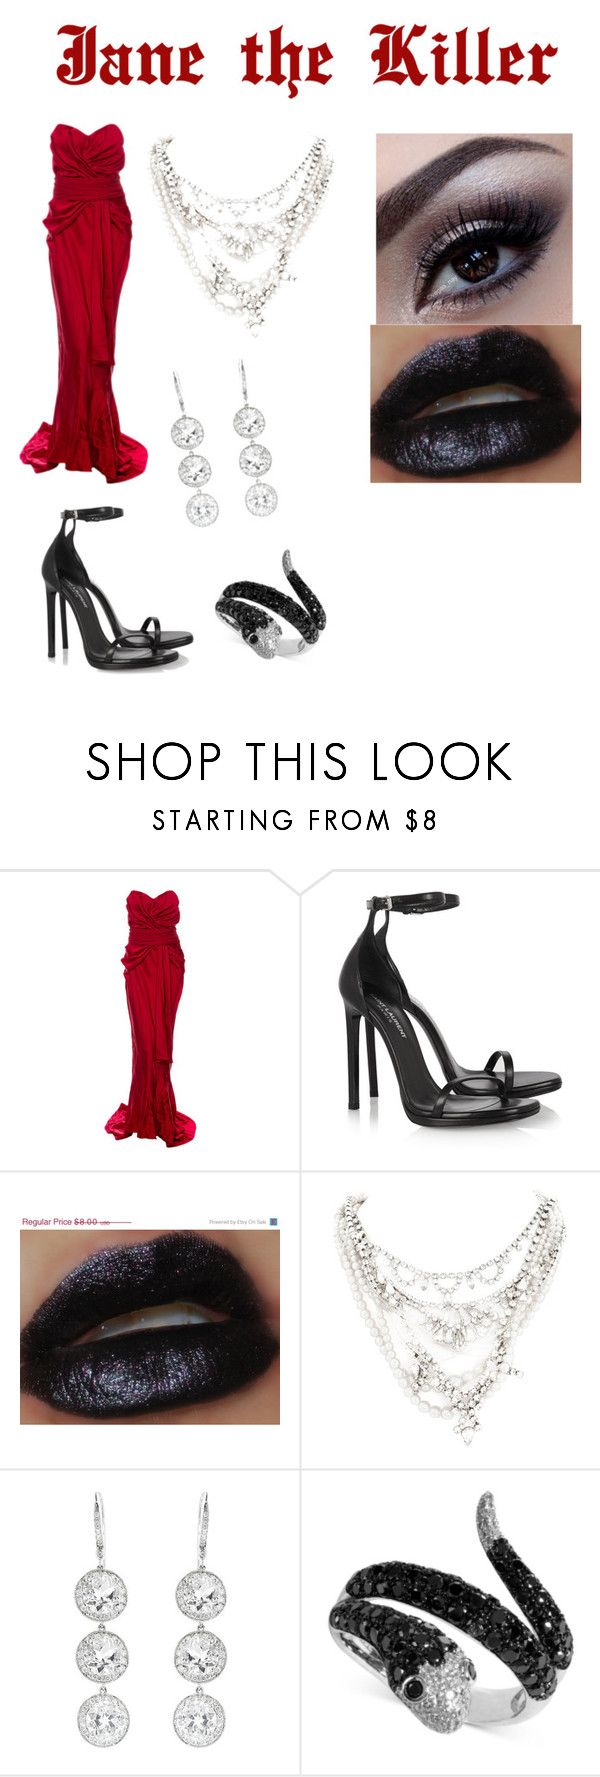 """""""Jane the Killer"""" by velvet-volturi ❤ liked on Polyvore featuring Christian Dior, Yves Saint Laurent, Tom Binns, Andrea Fohrman and Effy Jewelry"""